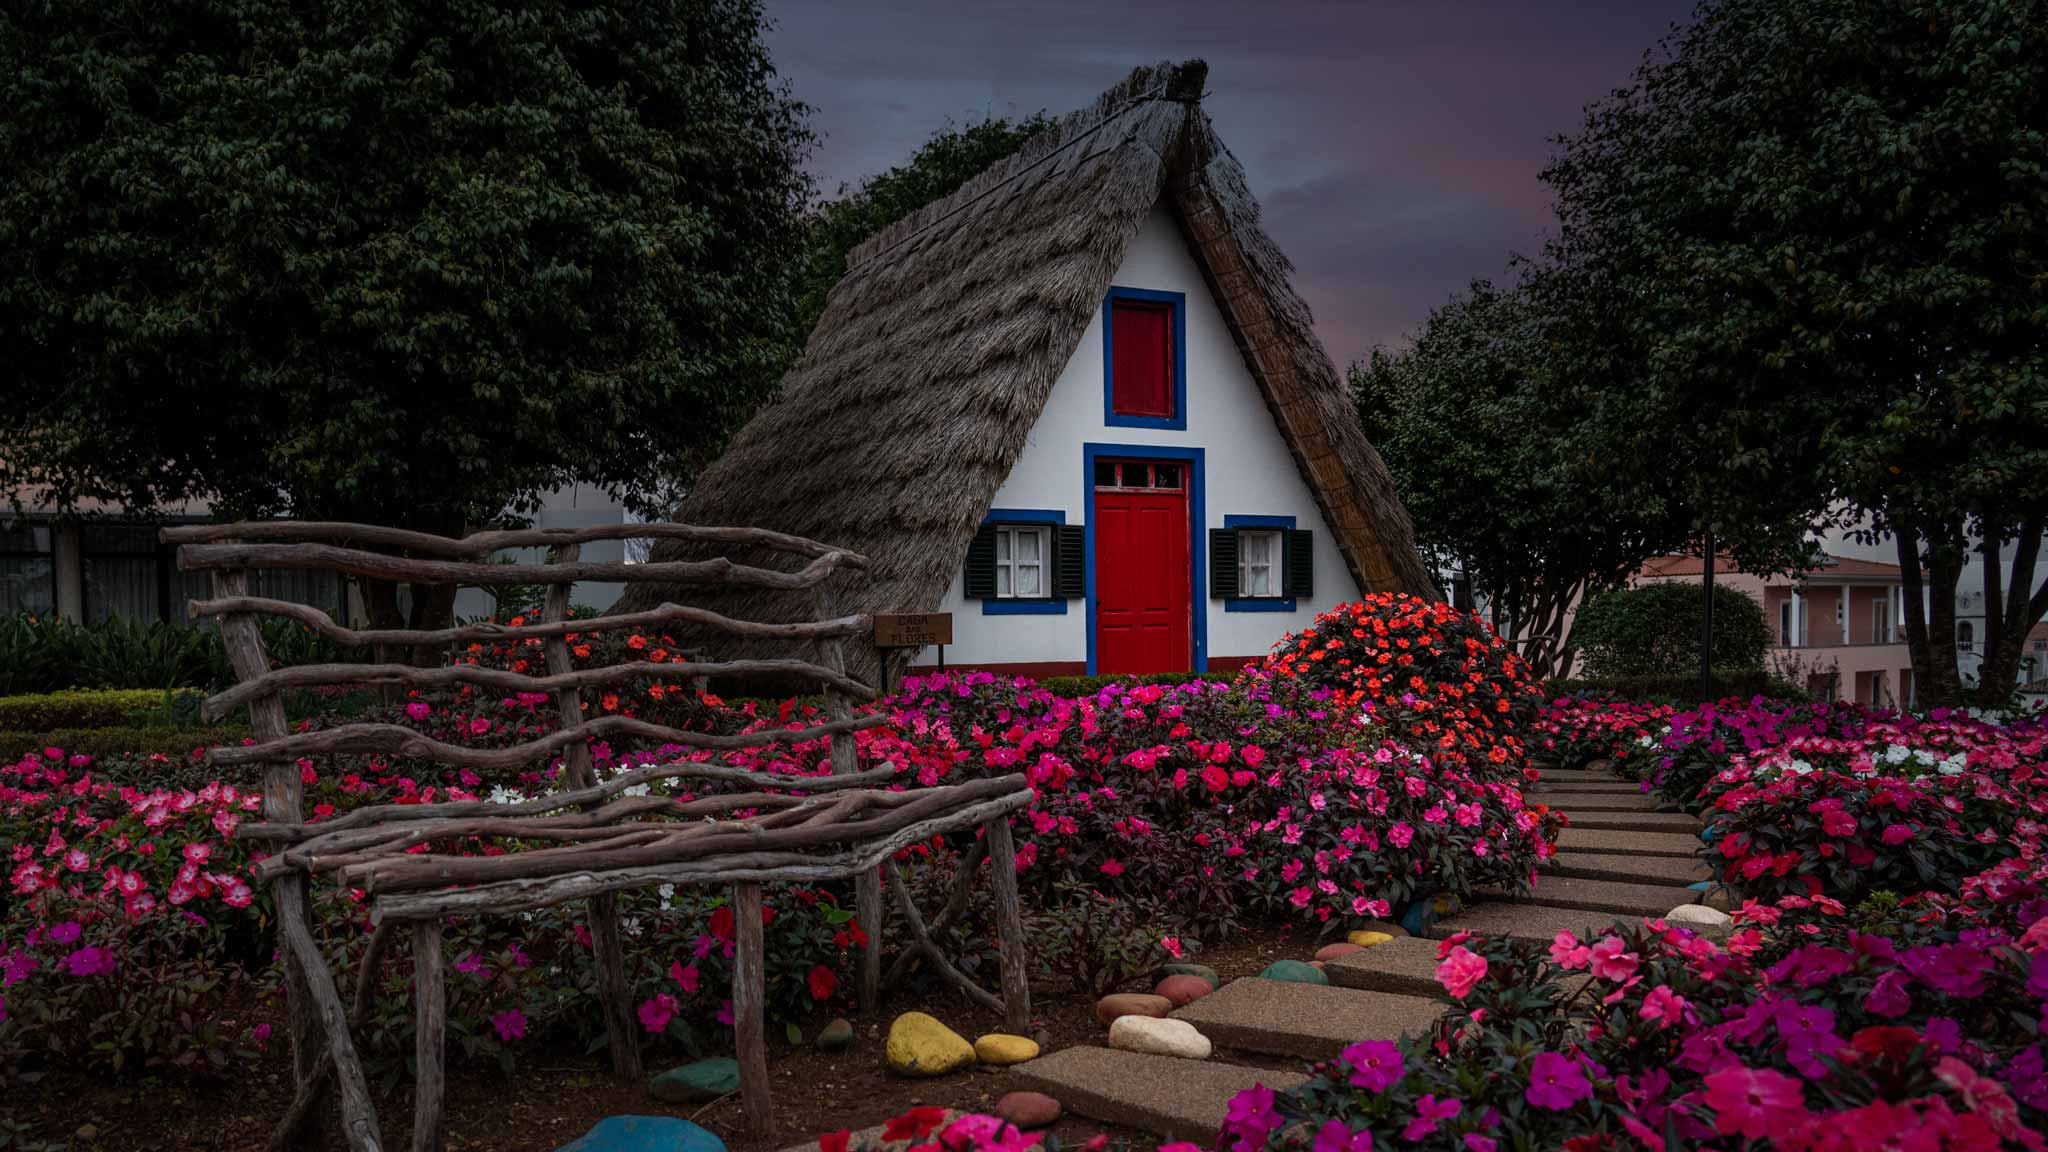 The traditional thatched houses of Santana, a pointed triangle shaped house with colourful blue and red windows and flowers outside